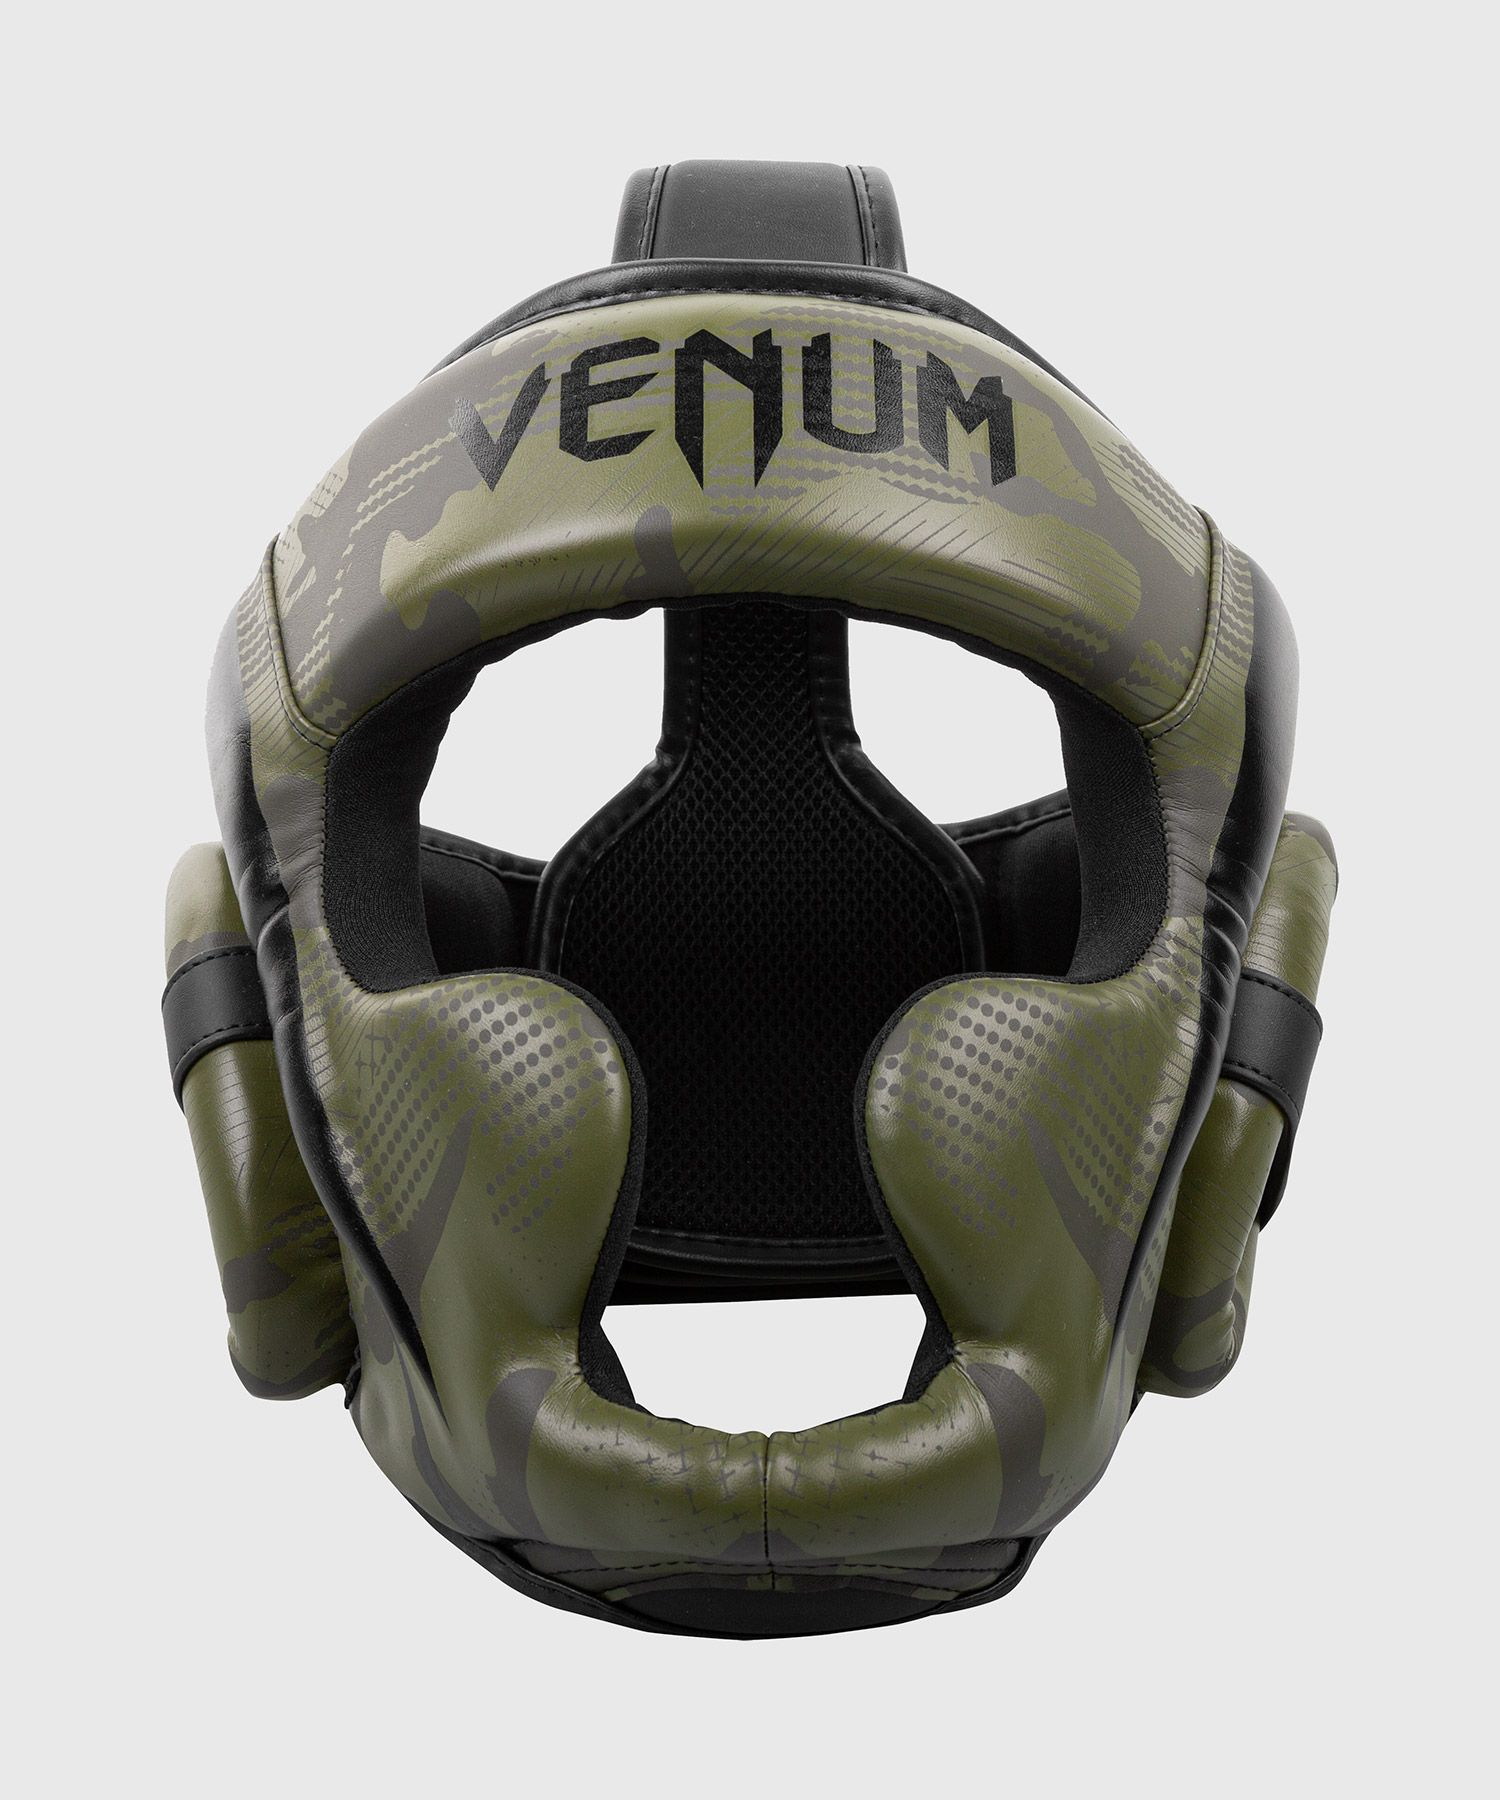 Venum Elite Boxing Headgear - Khaki camo